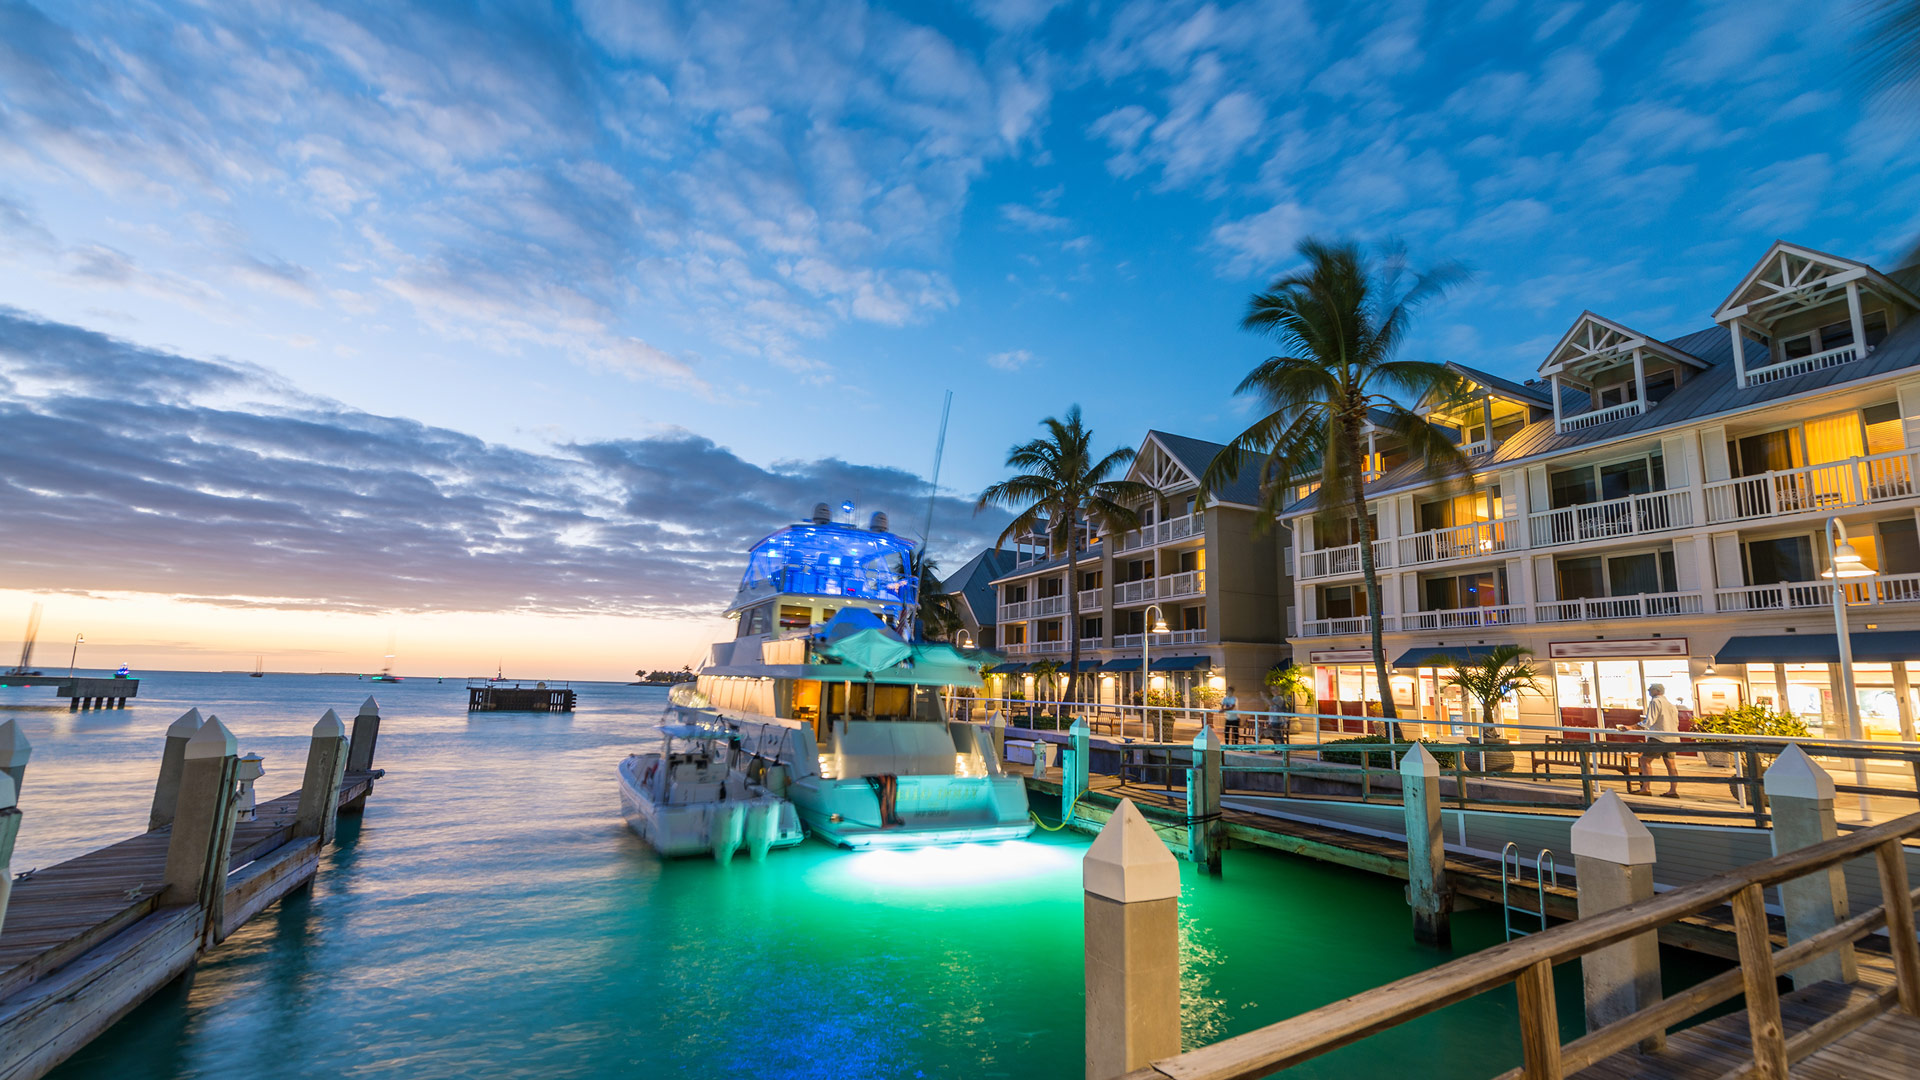 Key West Hotels & Vacation Planning